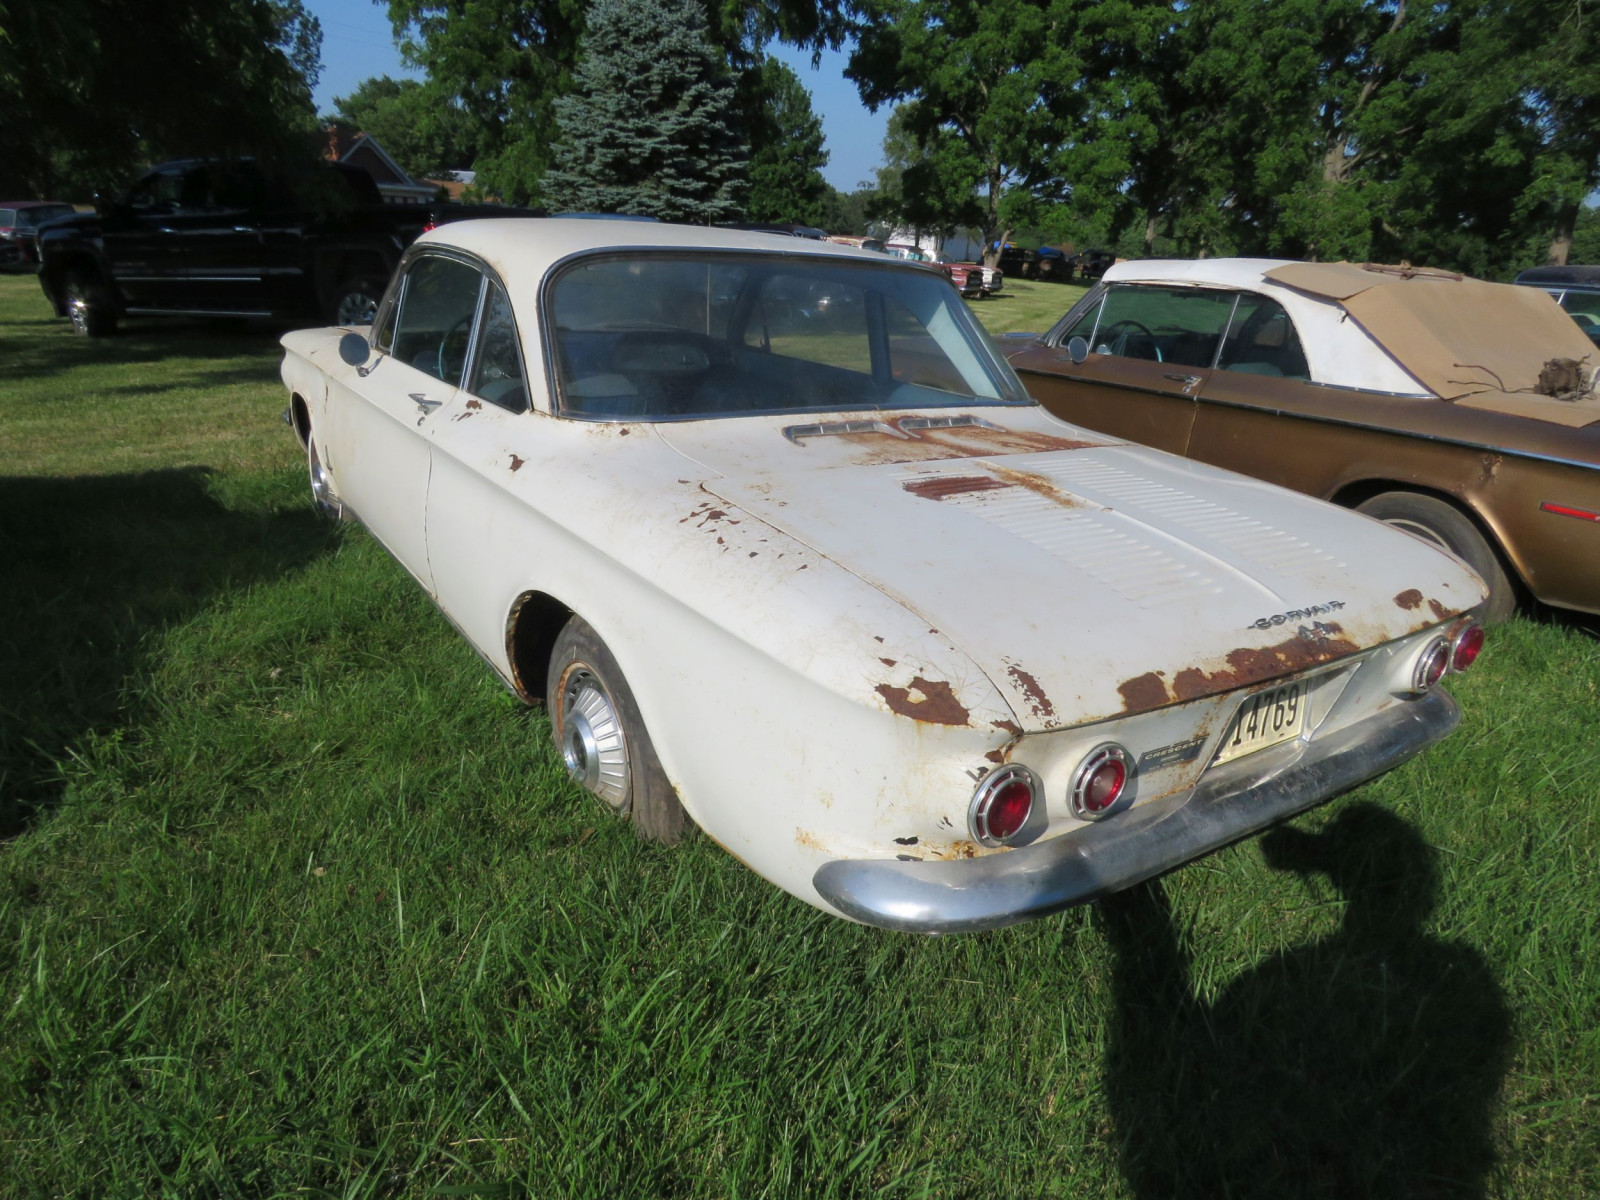 1962 Chevrolet Corvair Coupe - Image 7